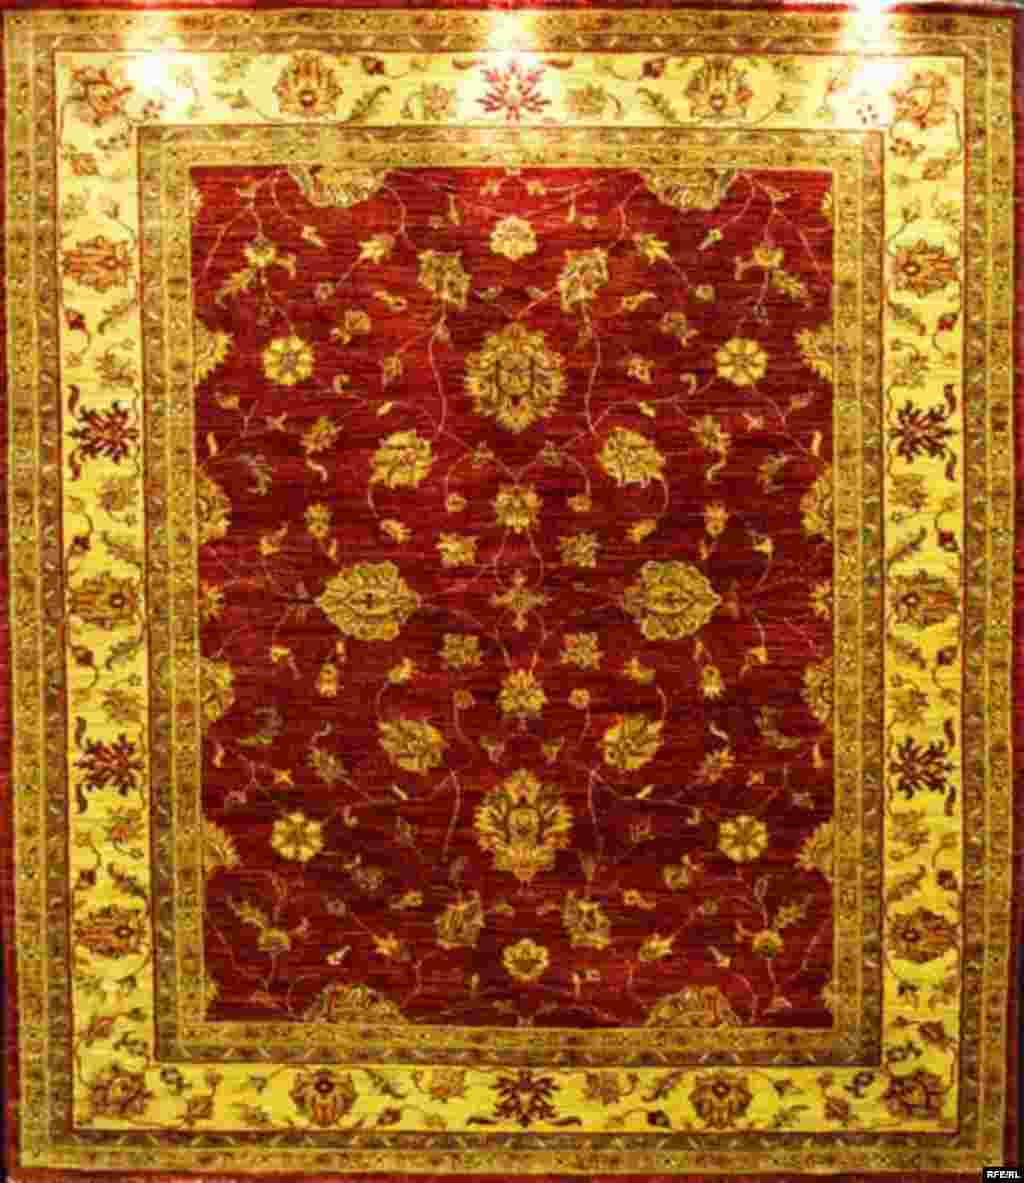 Germany -- carpet - rug1